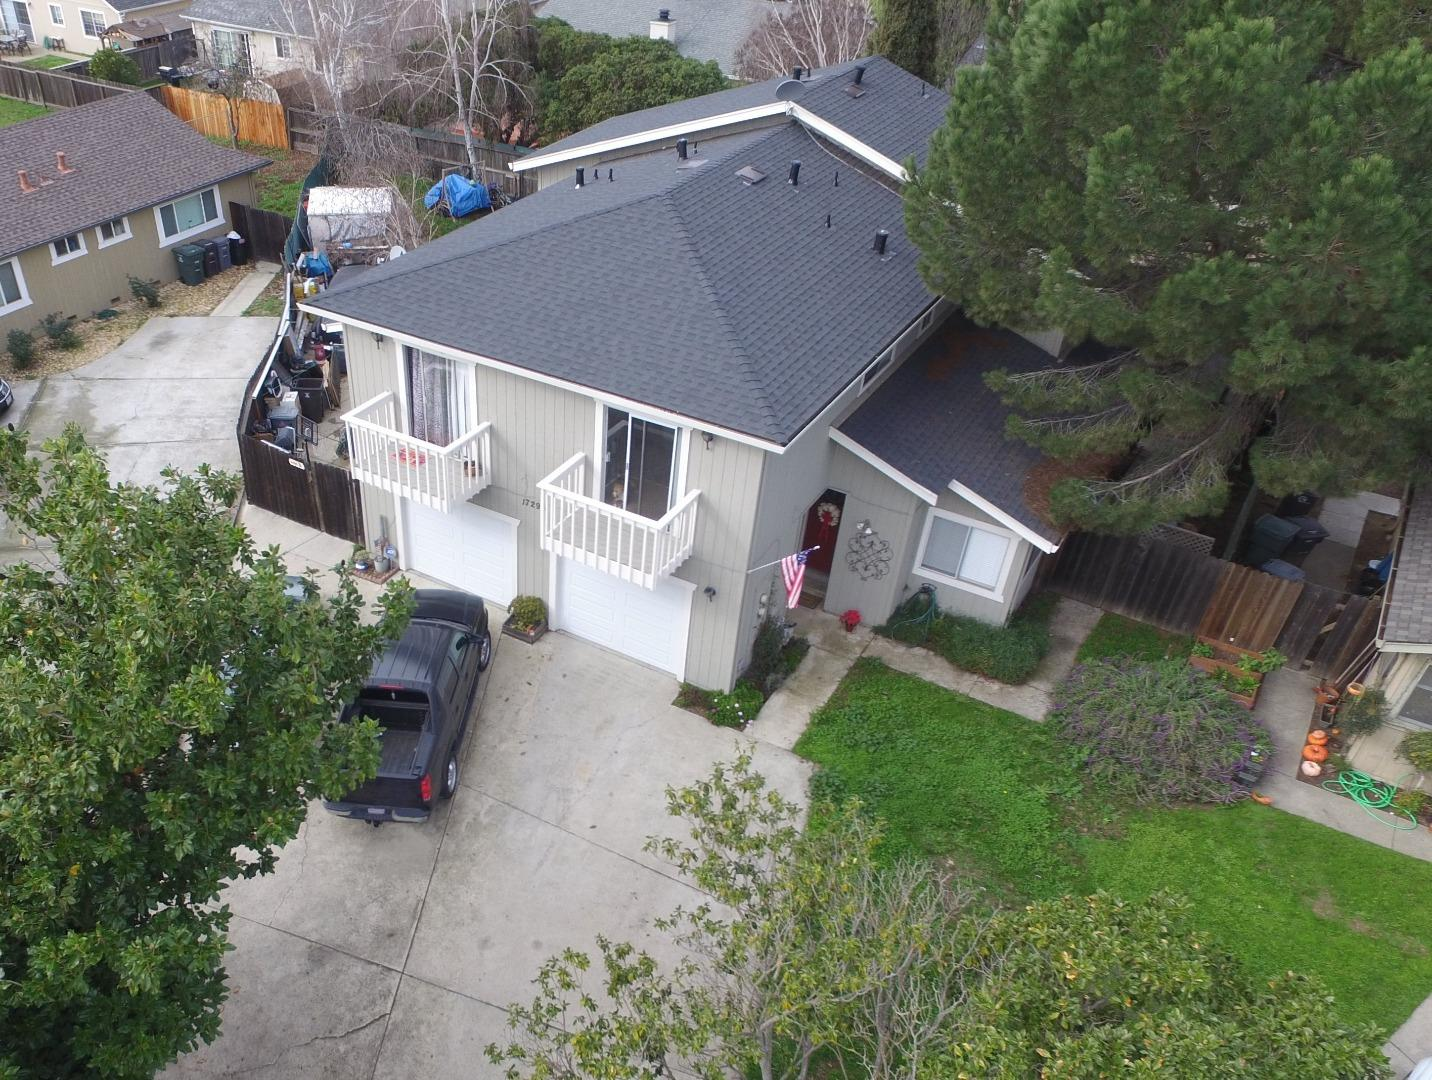 Multi-Family Home for Sale at 17295 Markross Court 17295 Markross Court Morgan Hill, California 95037 United States